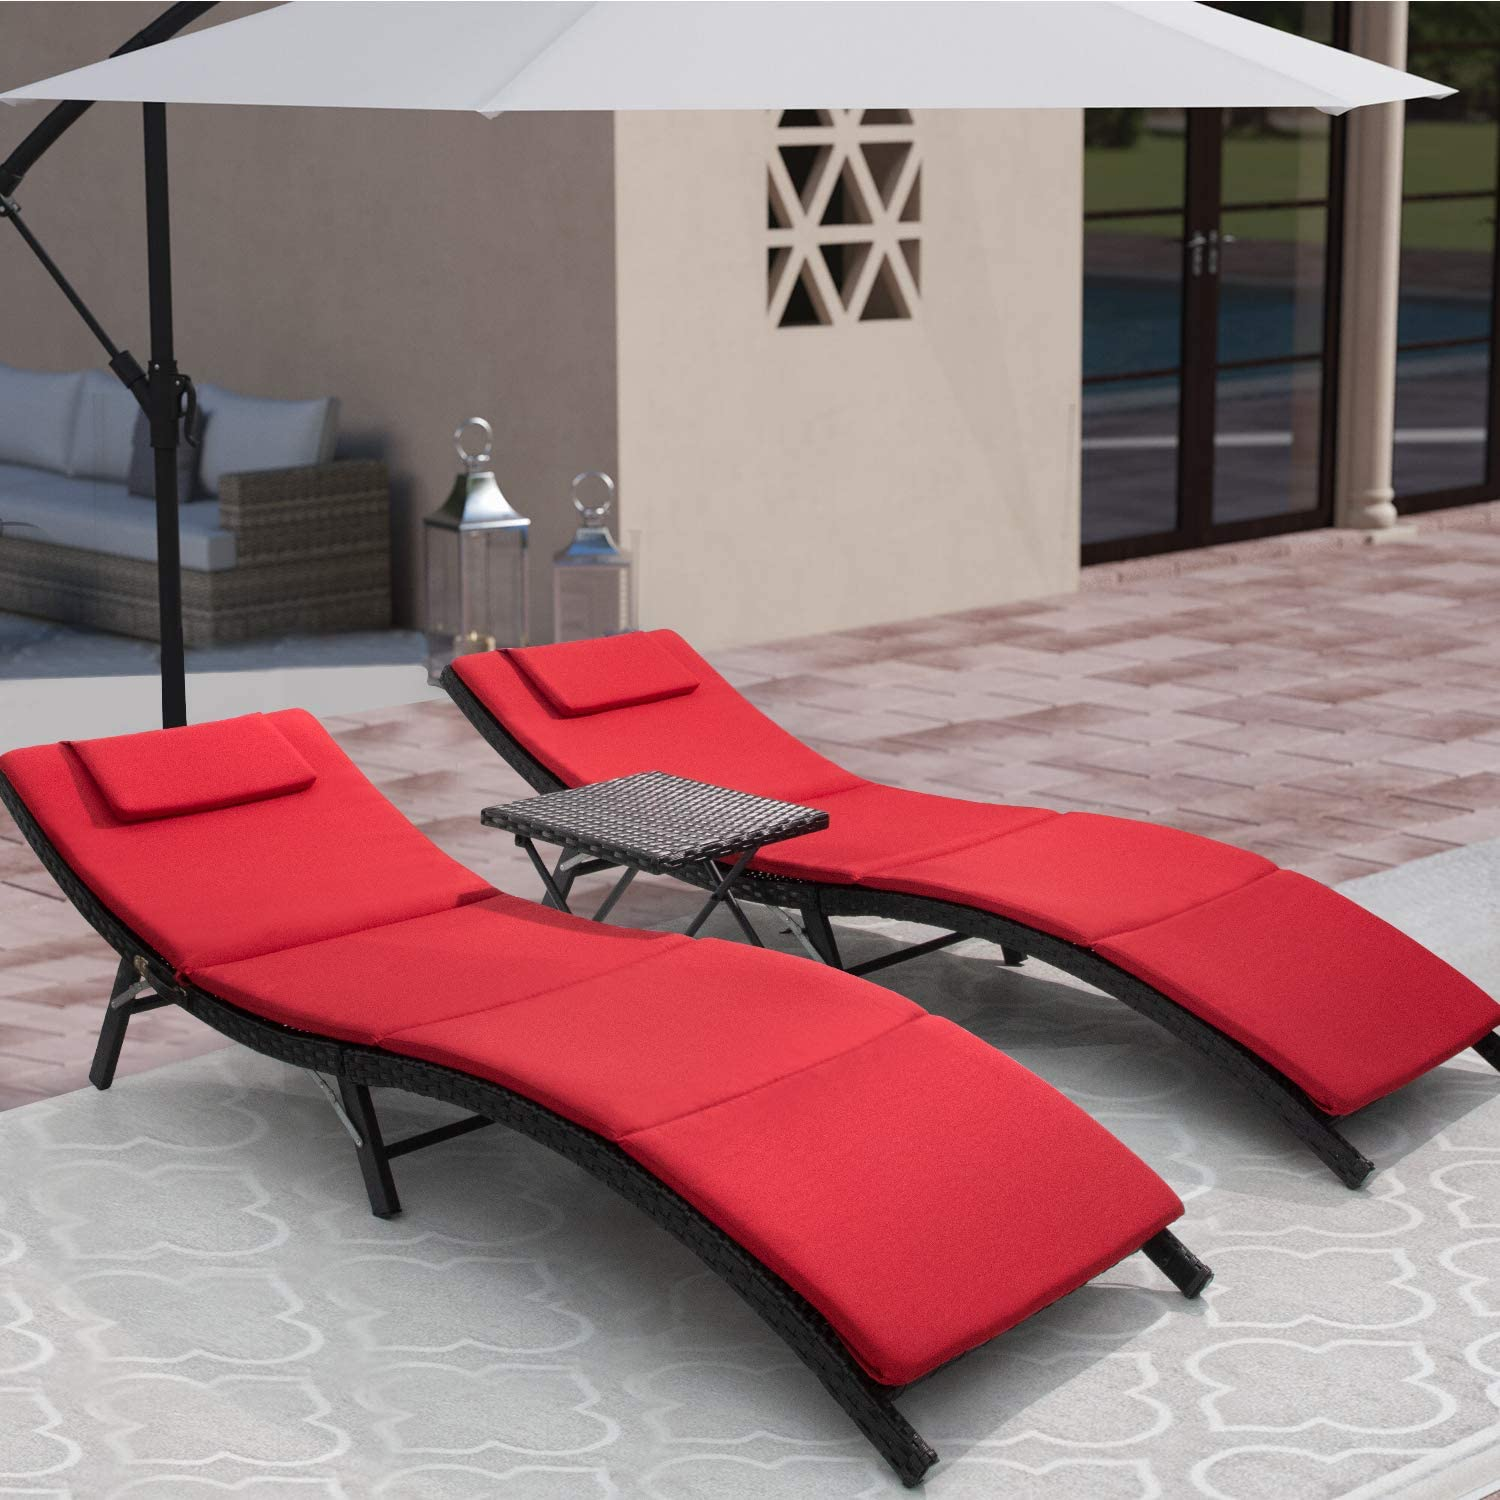 Flamaker 3 Pieces Patio Chaise Lounge with Cushions Unadjustable Modern Outdoor Furniture Set PE Wicker Rattan Backrest Lounger Chair Patio Folding Chaise Lounge with Folding Table